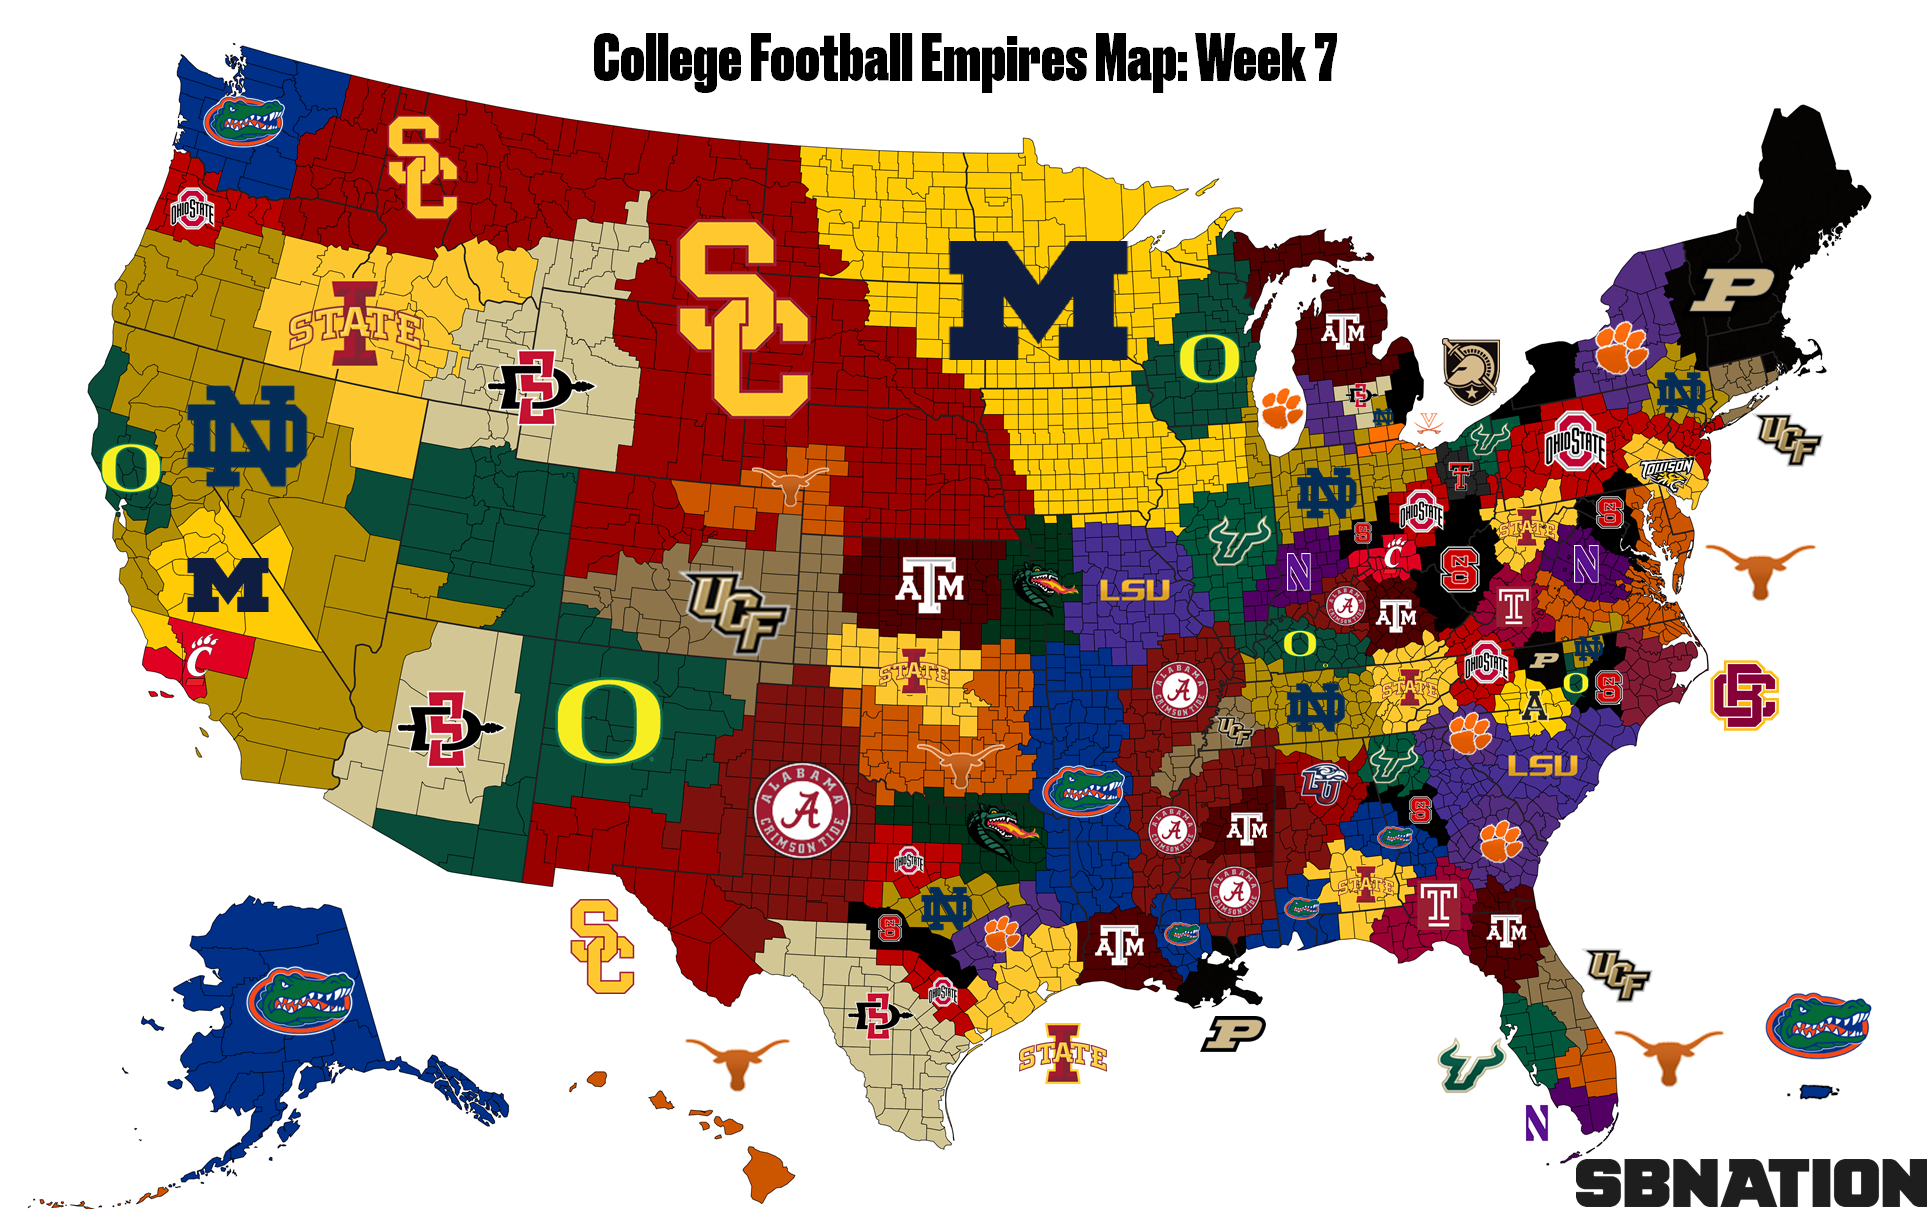 The College Football Empires Map, updated after Week 7 chaos